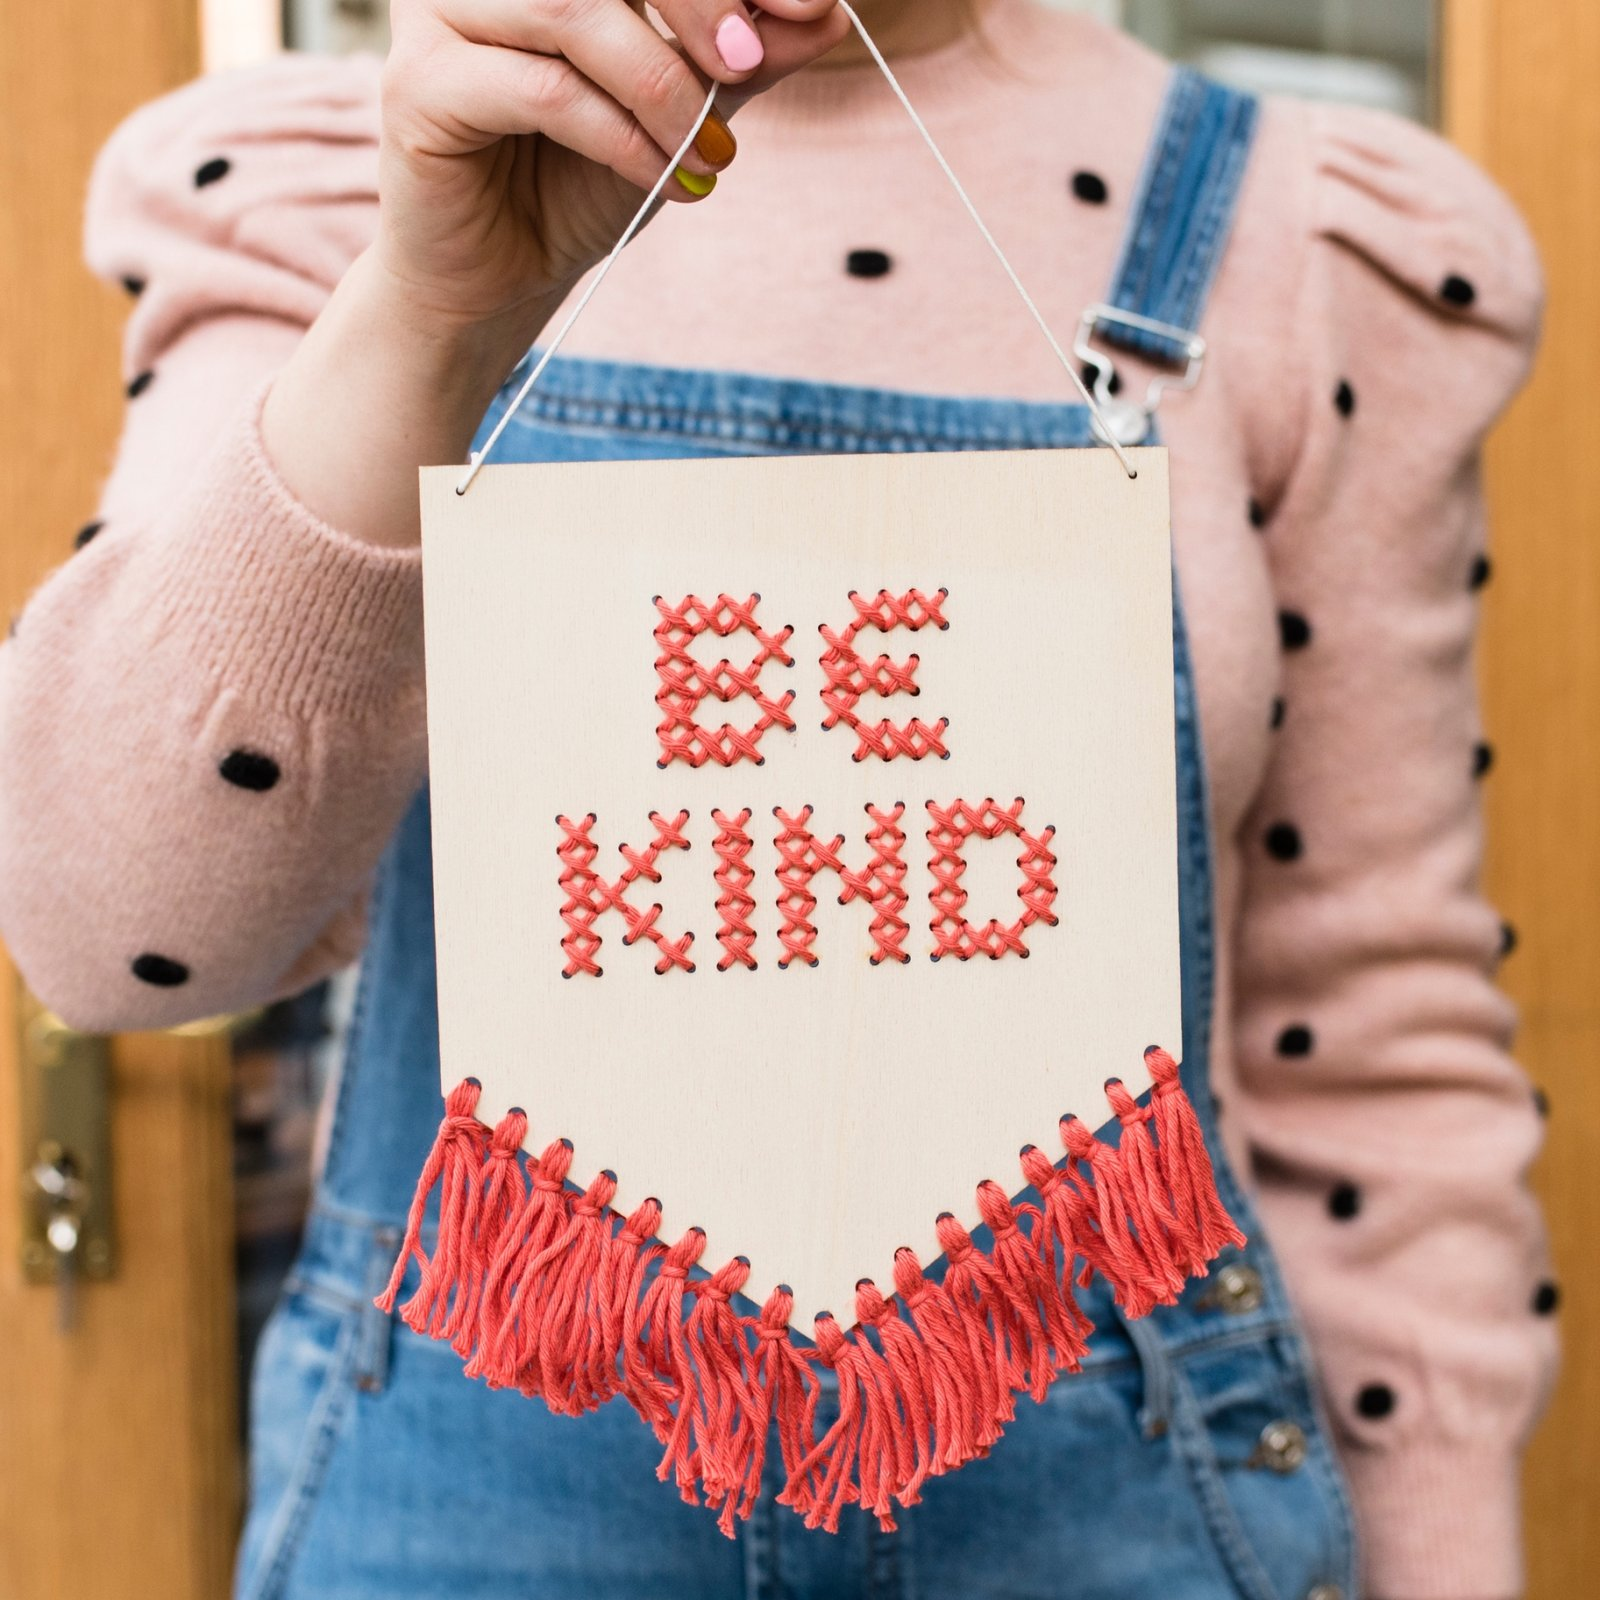 Be Kind Tassled Cross Stitch Banner Kit by Cotton Clara